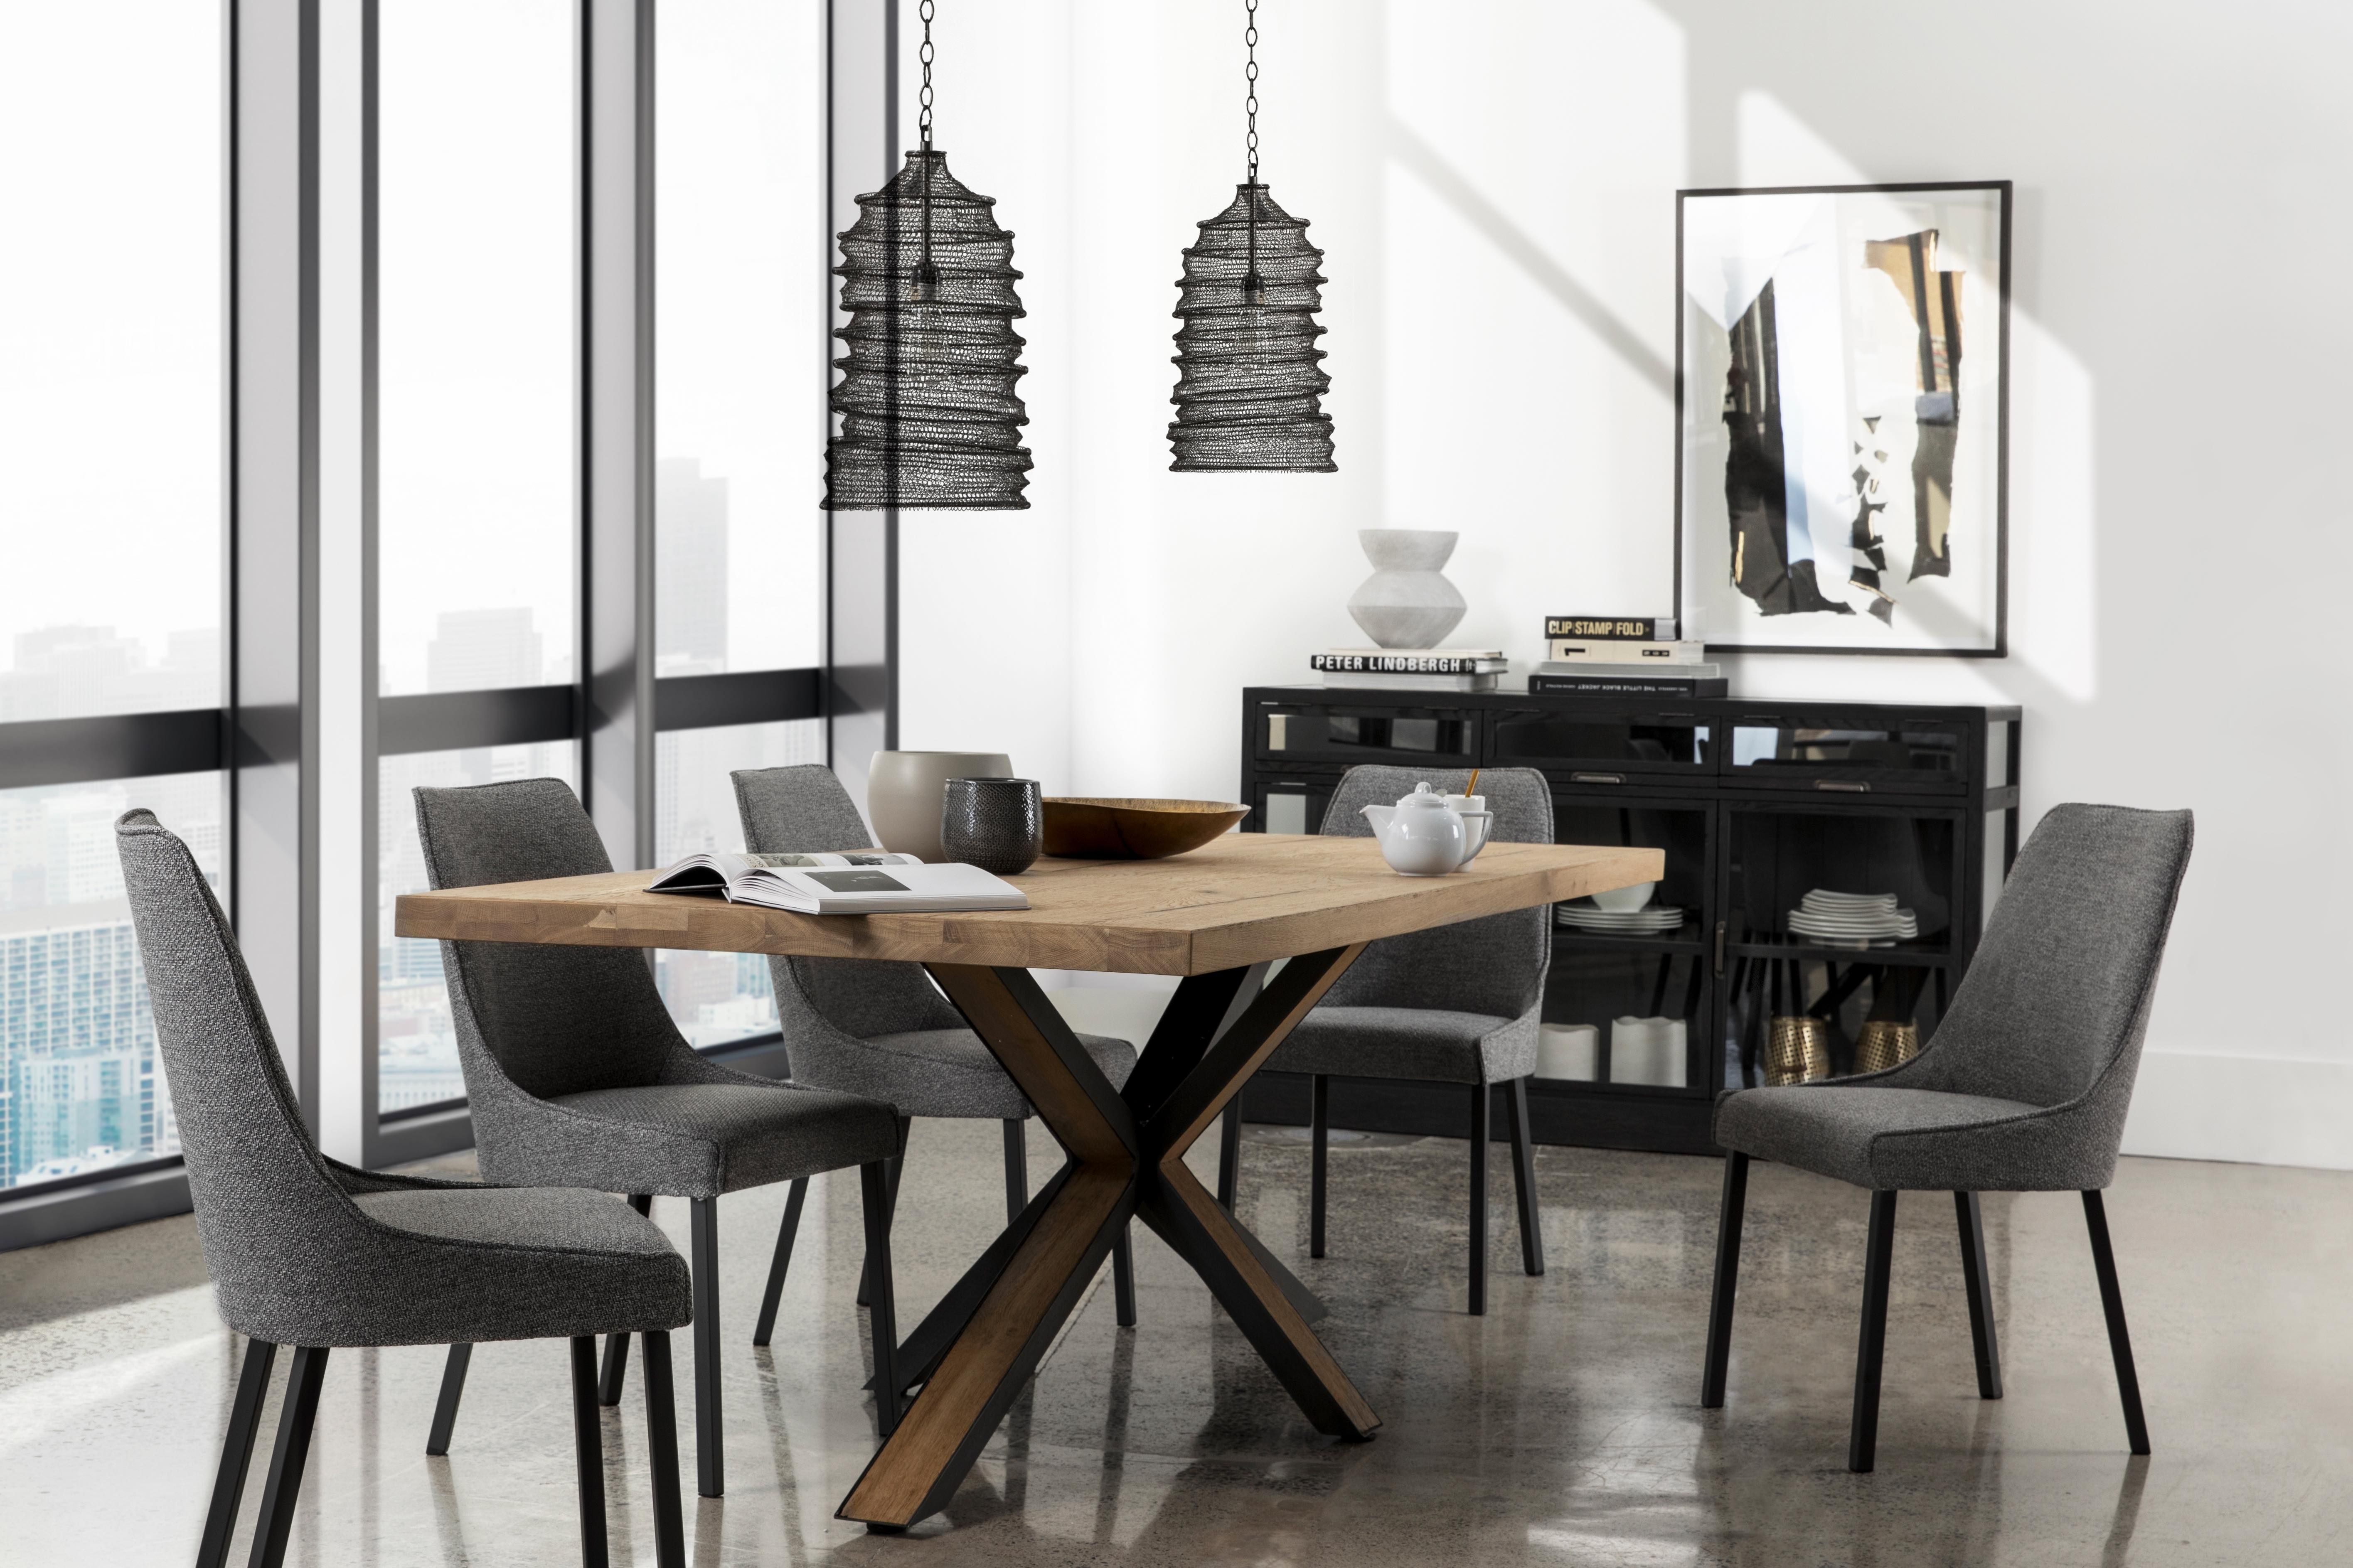 Ovada Table Table Home Decor Dining Table